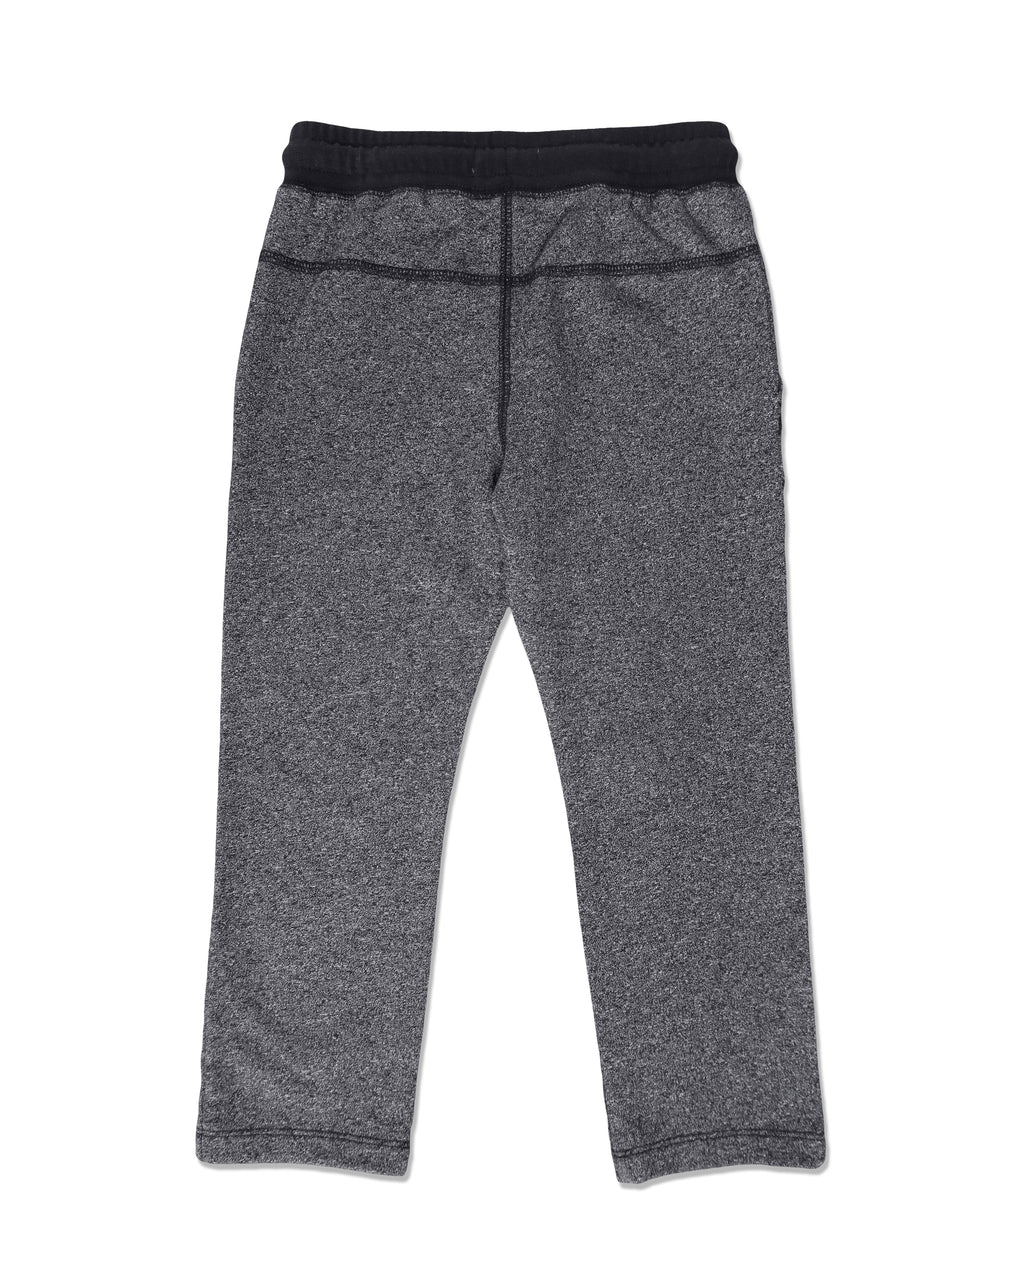 back image of grey jog pants with pockets